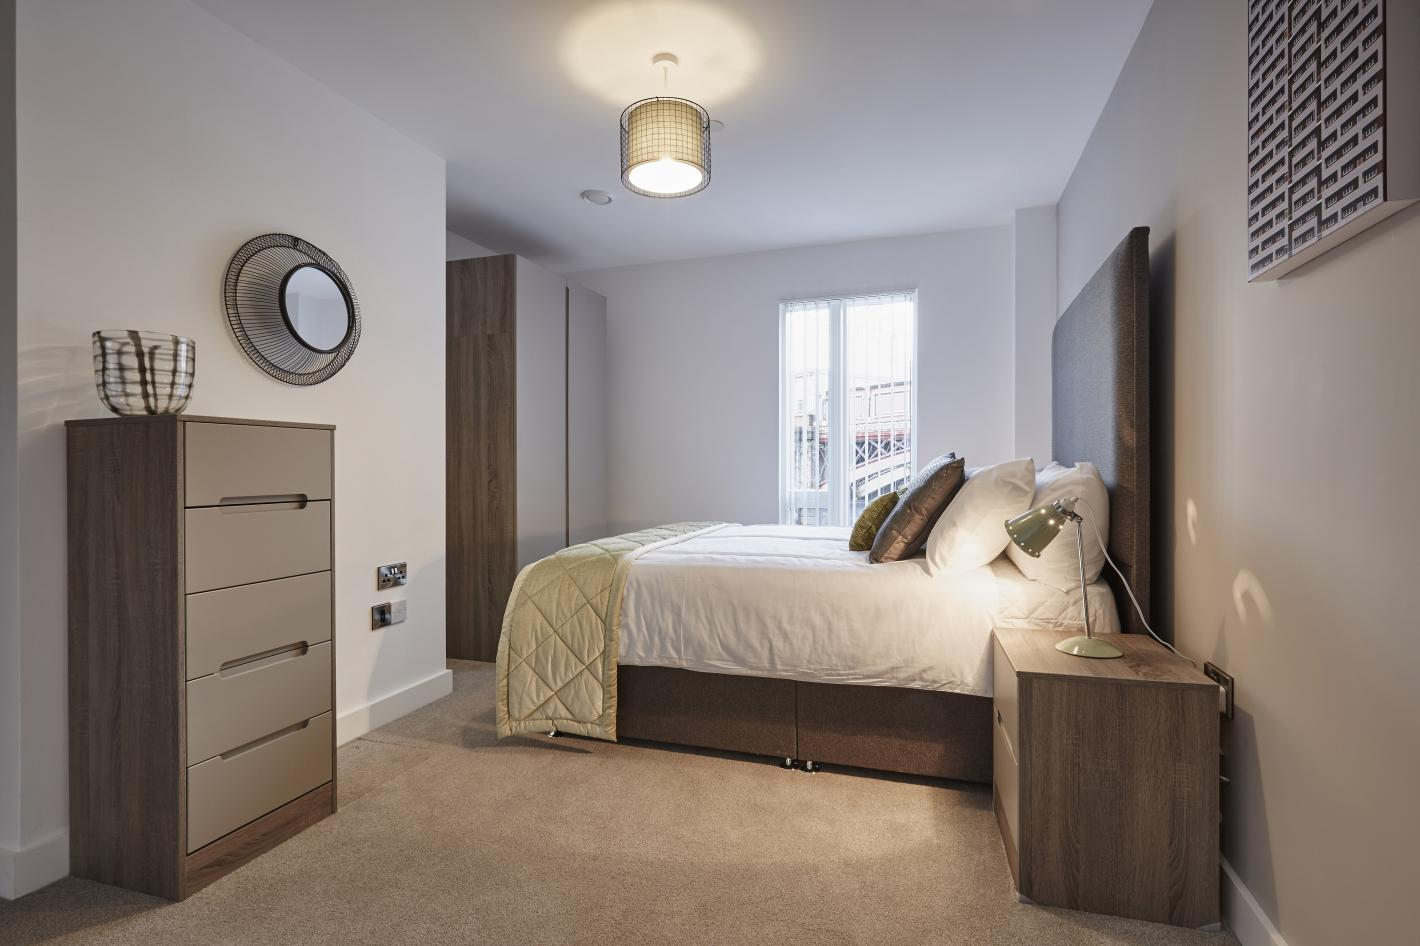 bedroom in buy to let investment, white walls, large double bed in the middle of the room, chest of draws to the left and bedside table